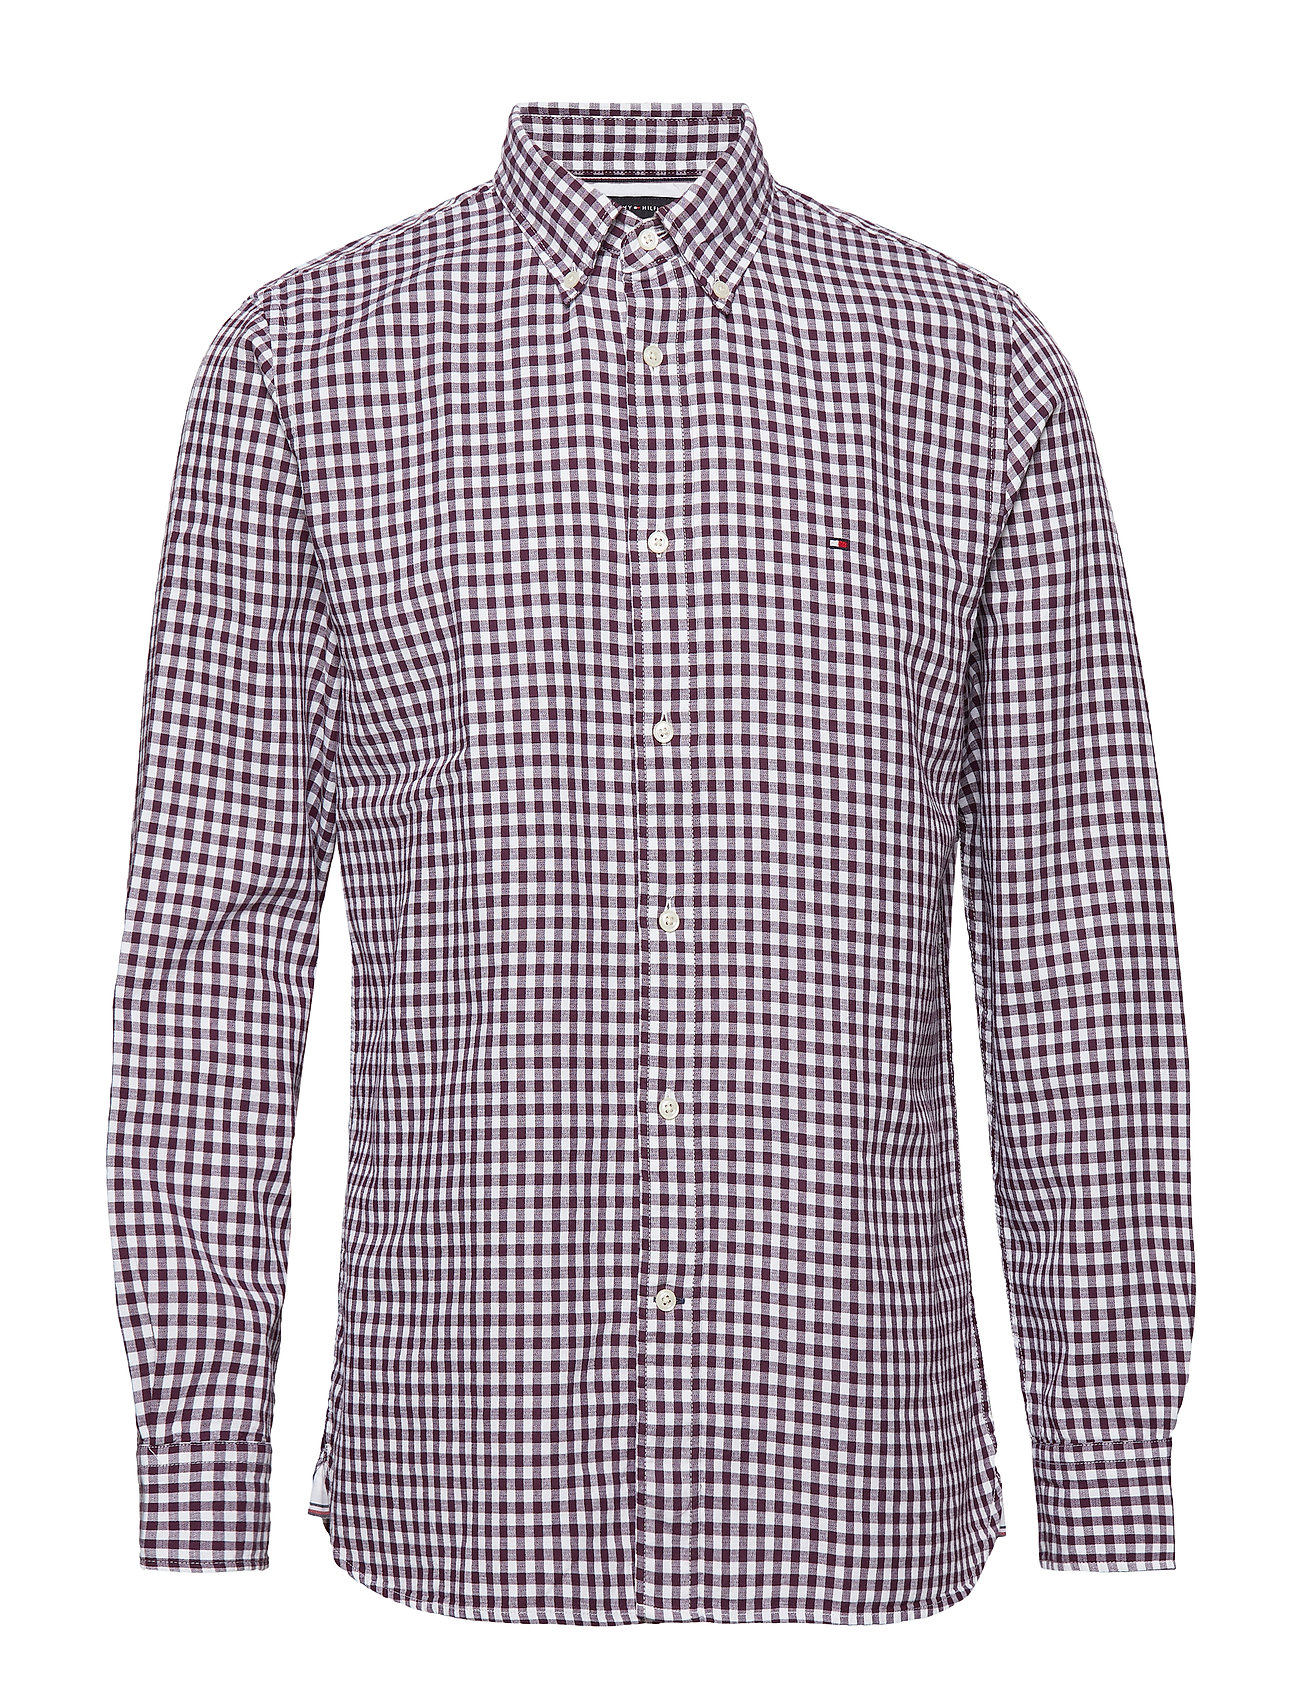 Tommy Hilfiger CLASSIC TEXTURED GINGHAM SHIRT - POTENT PURPLE / BRIGHT WHITE